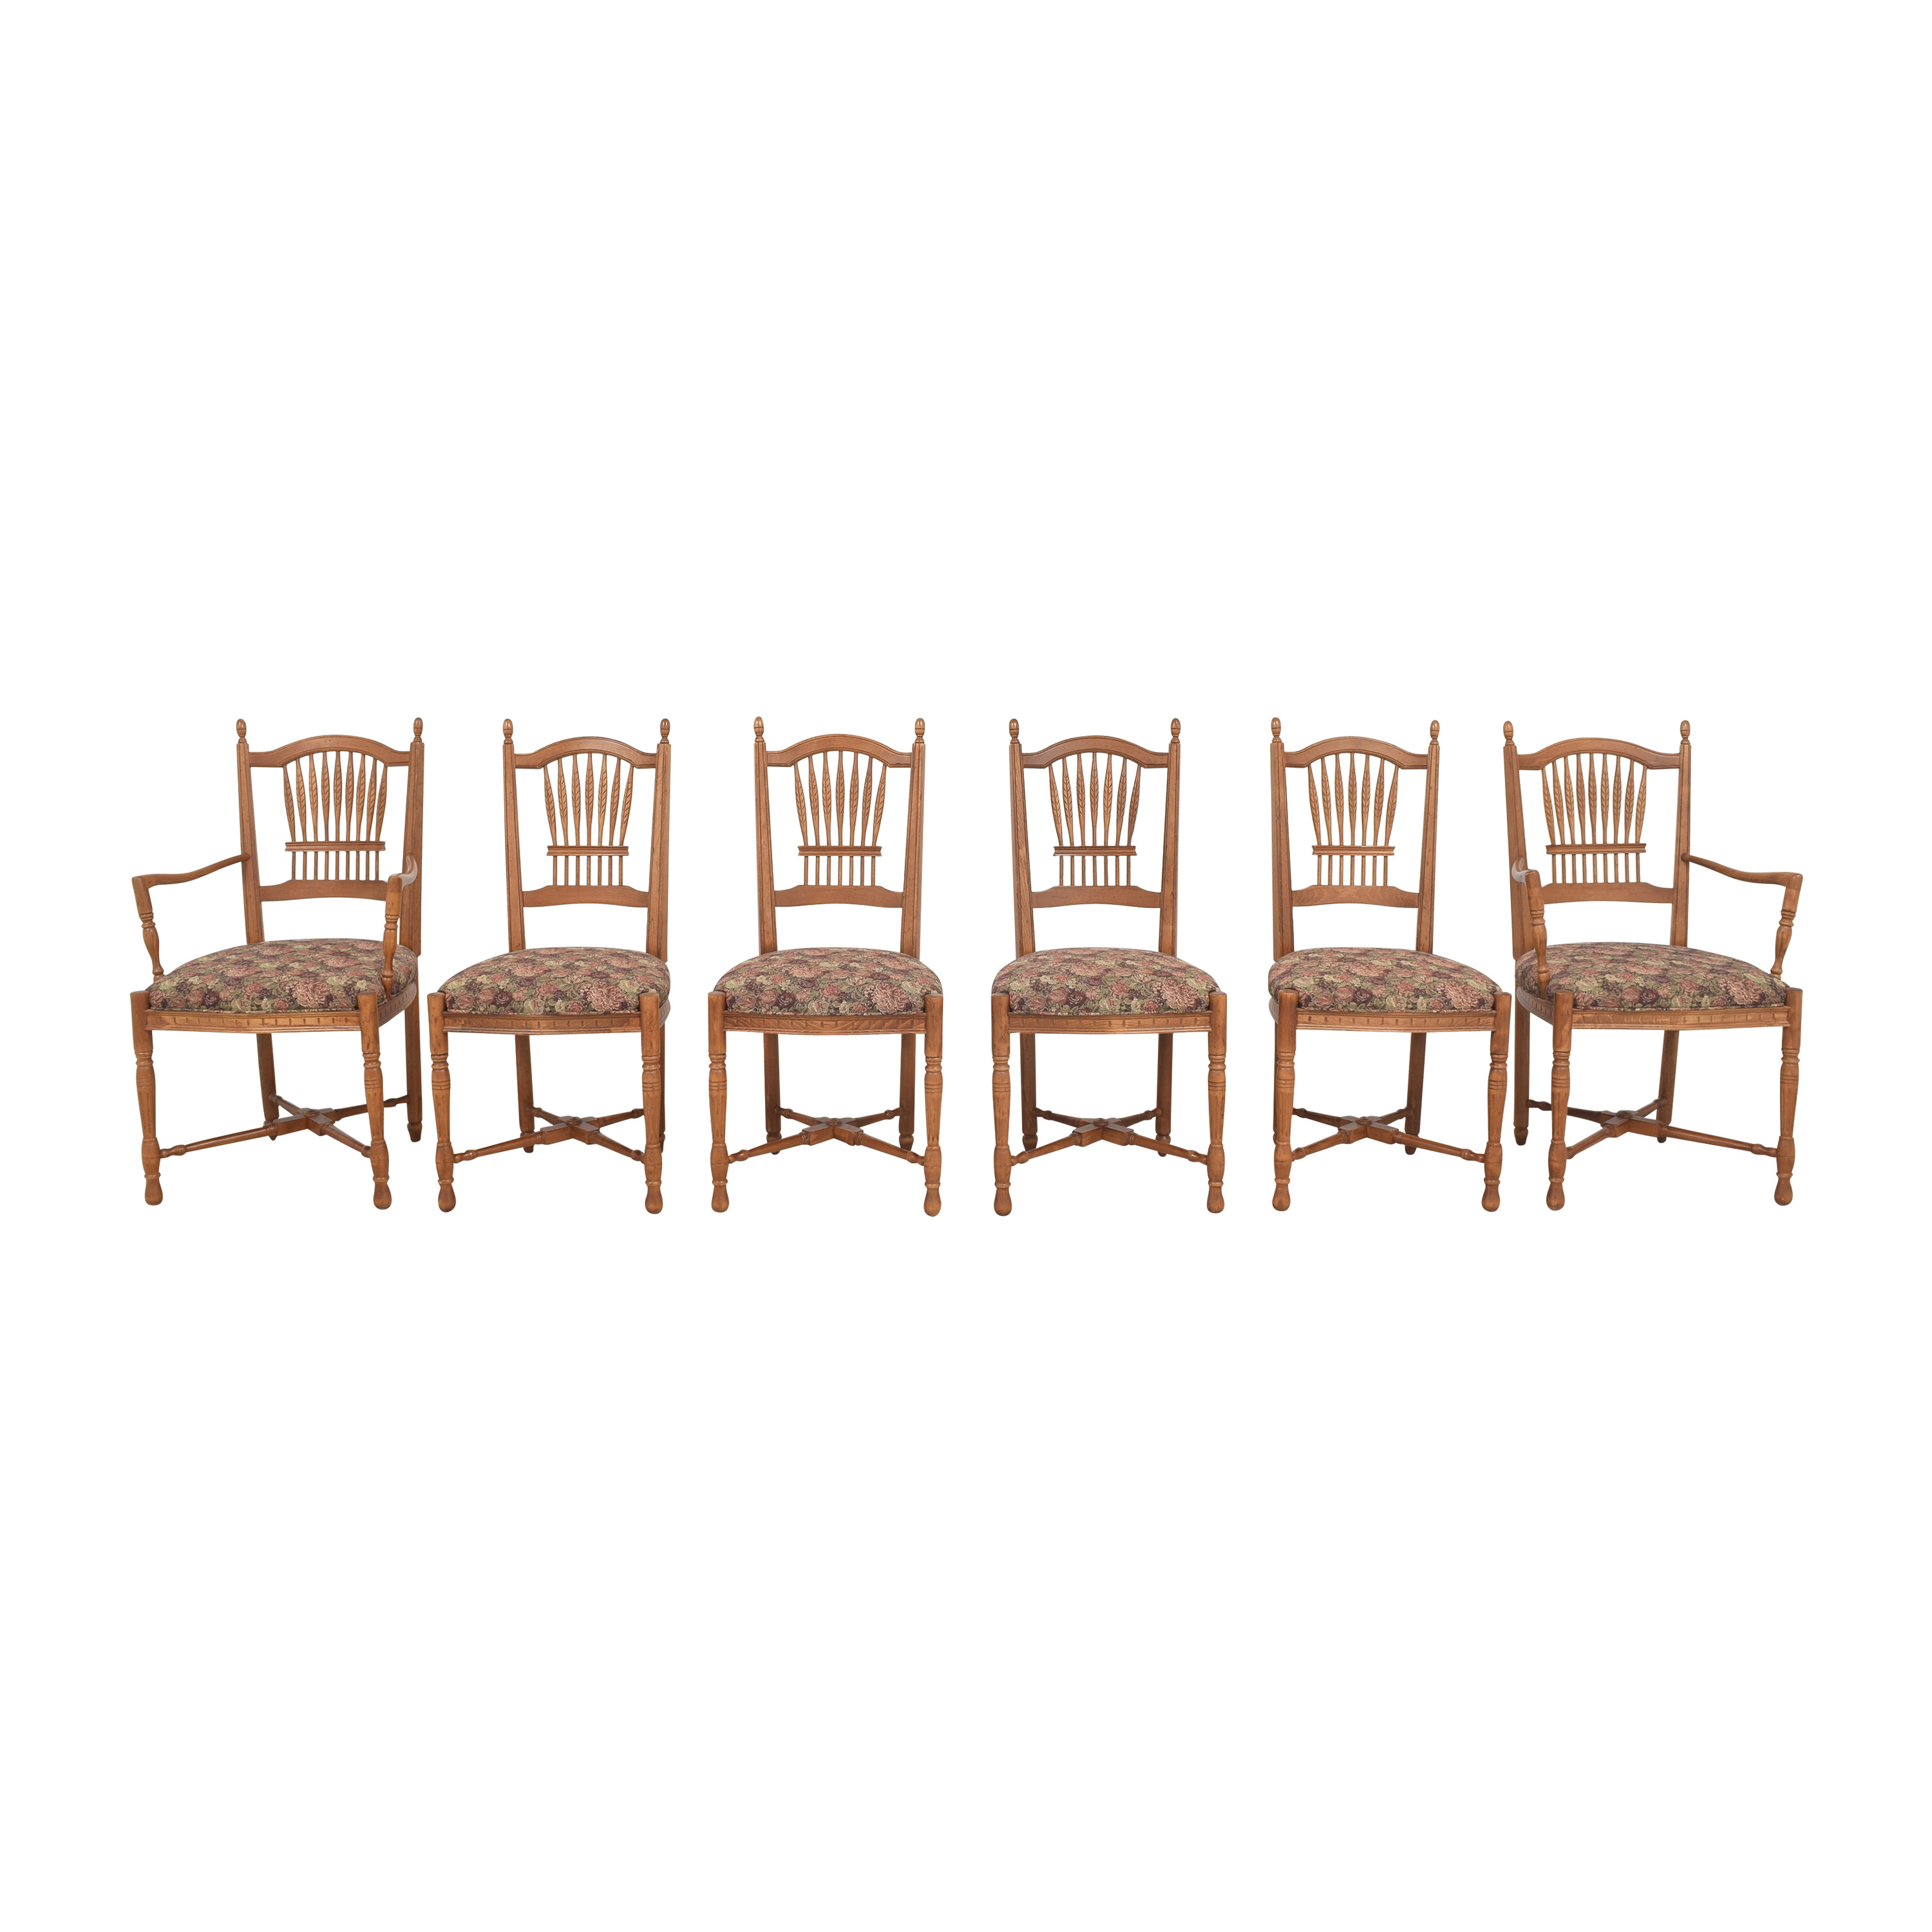 Ethan Allen Ethan Allen Wheat Back Dining Chairs price